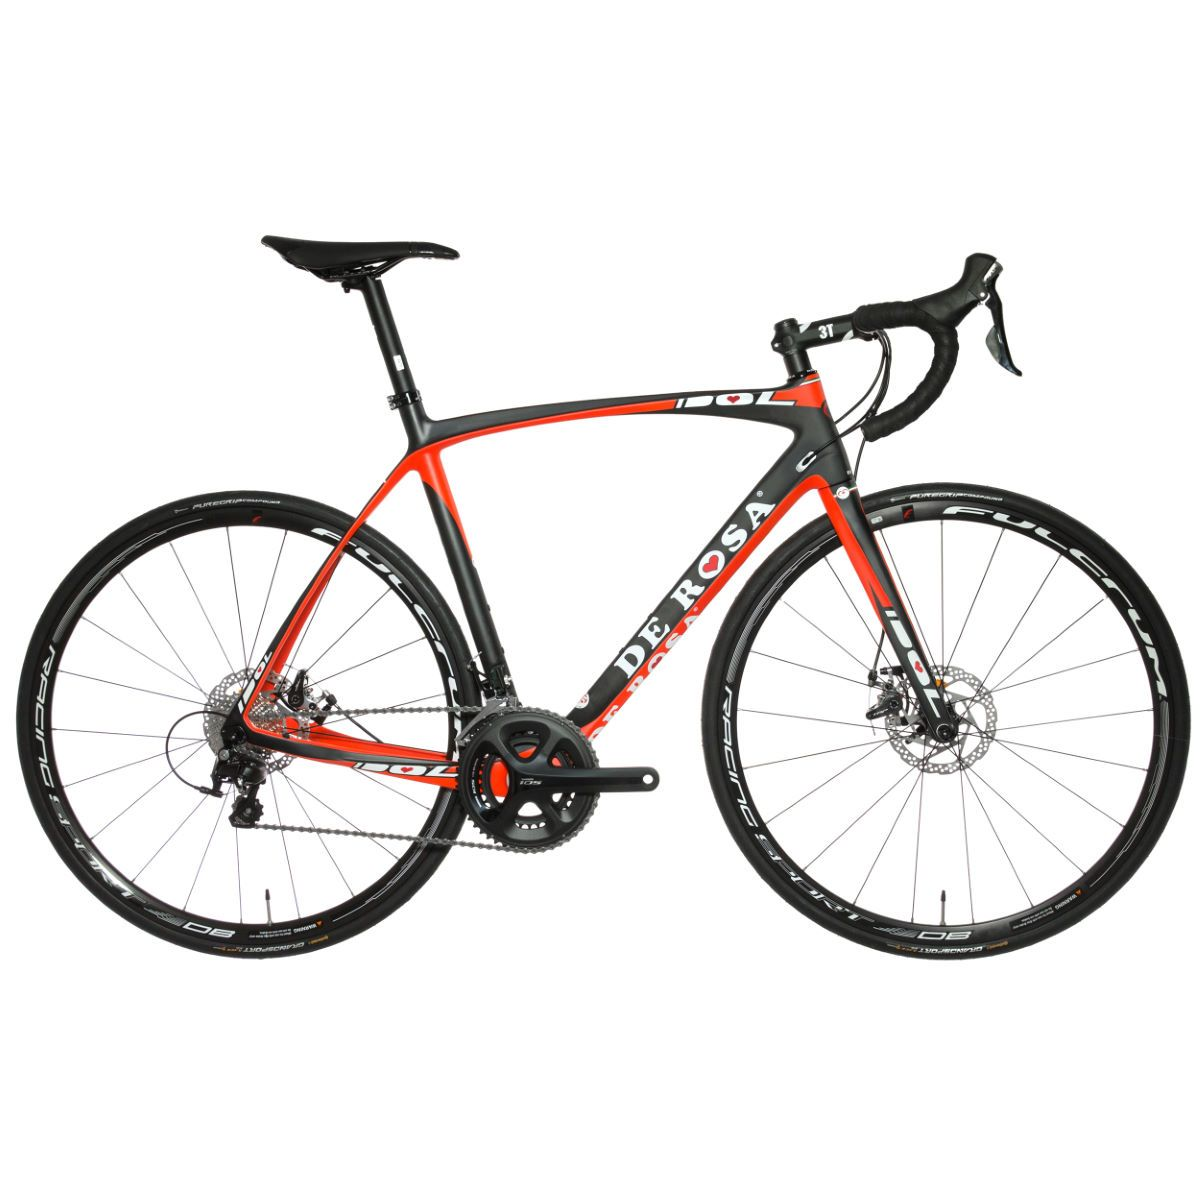 De Rosa Idol Disc (105   Mechanical) Road Bike Road Bikes The Idol The